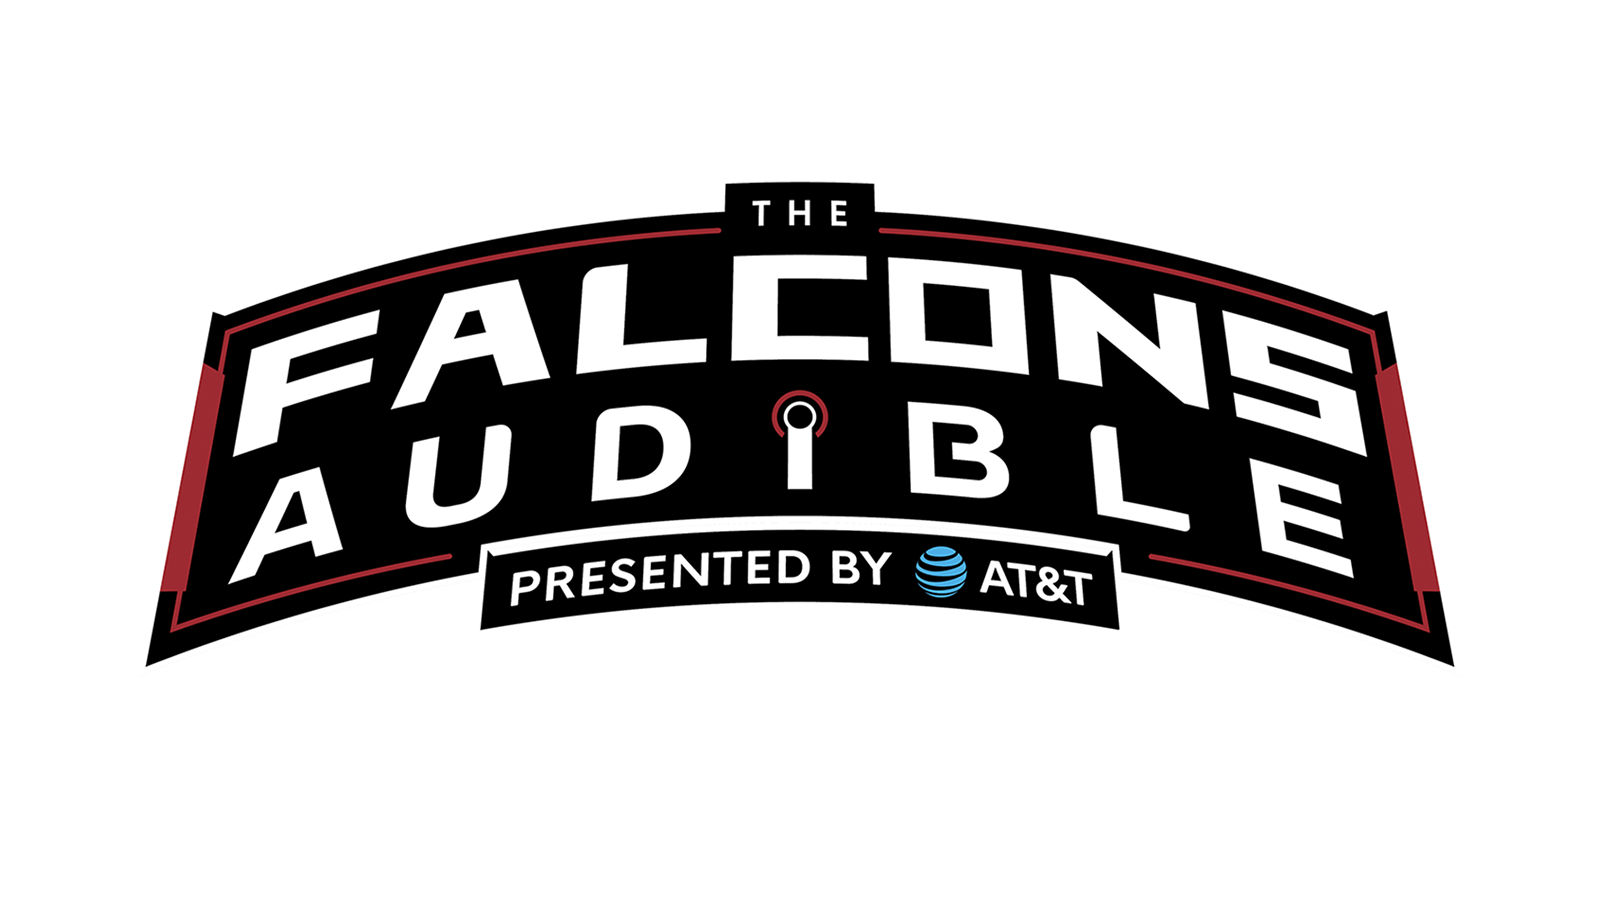 Falcons Audible presented by AT&T